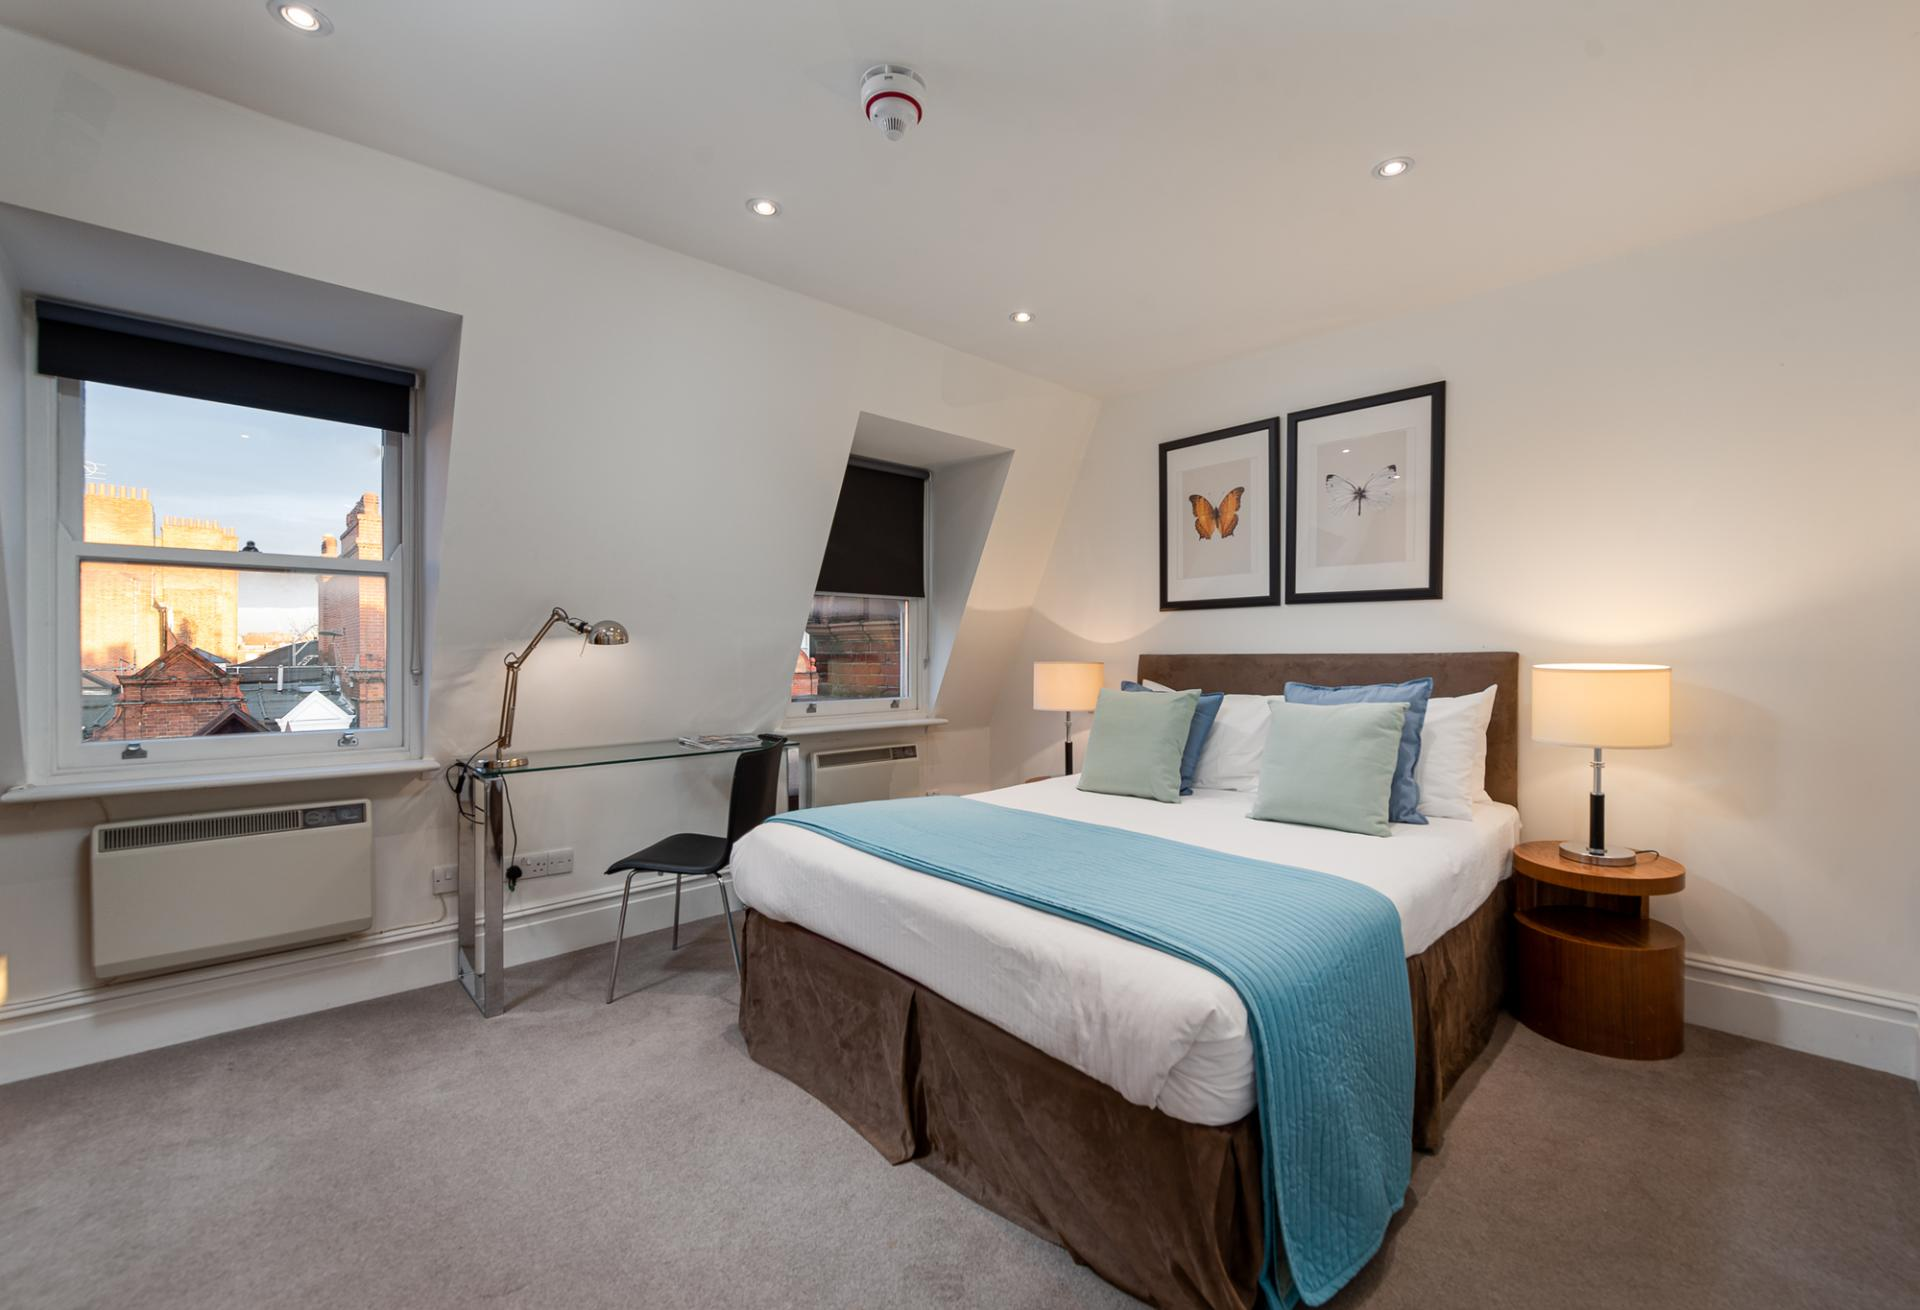 Bedroom at Draycott Place Serviced Apartments, Chelsea, London